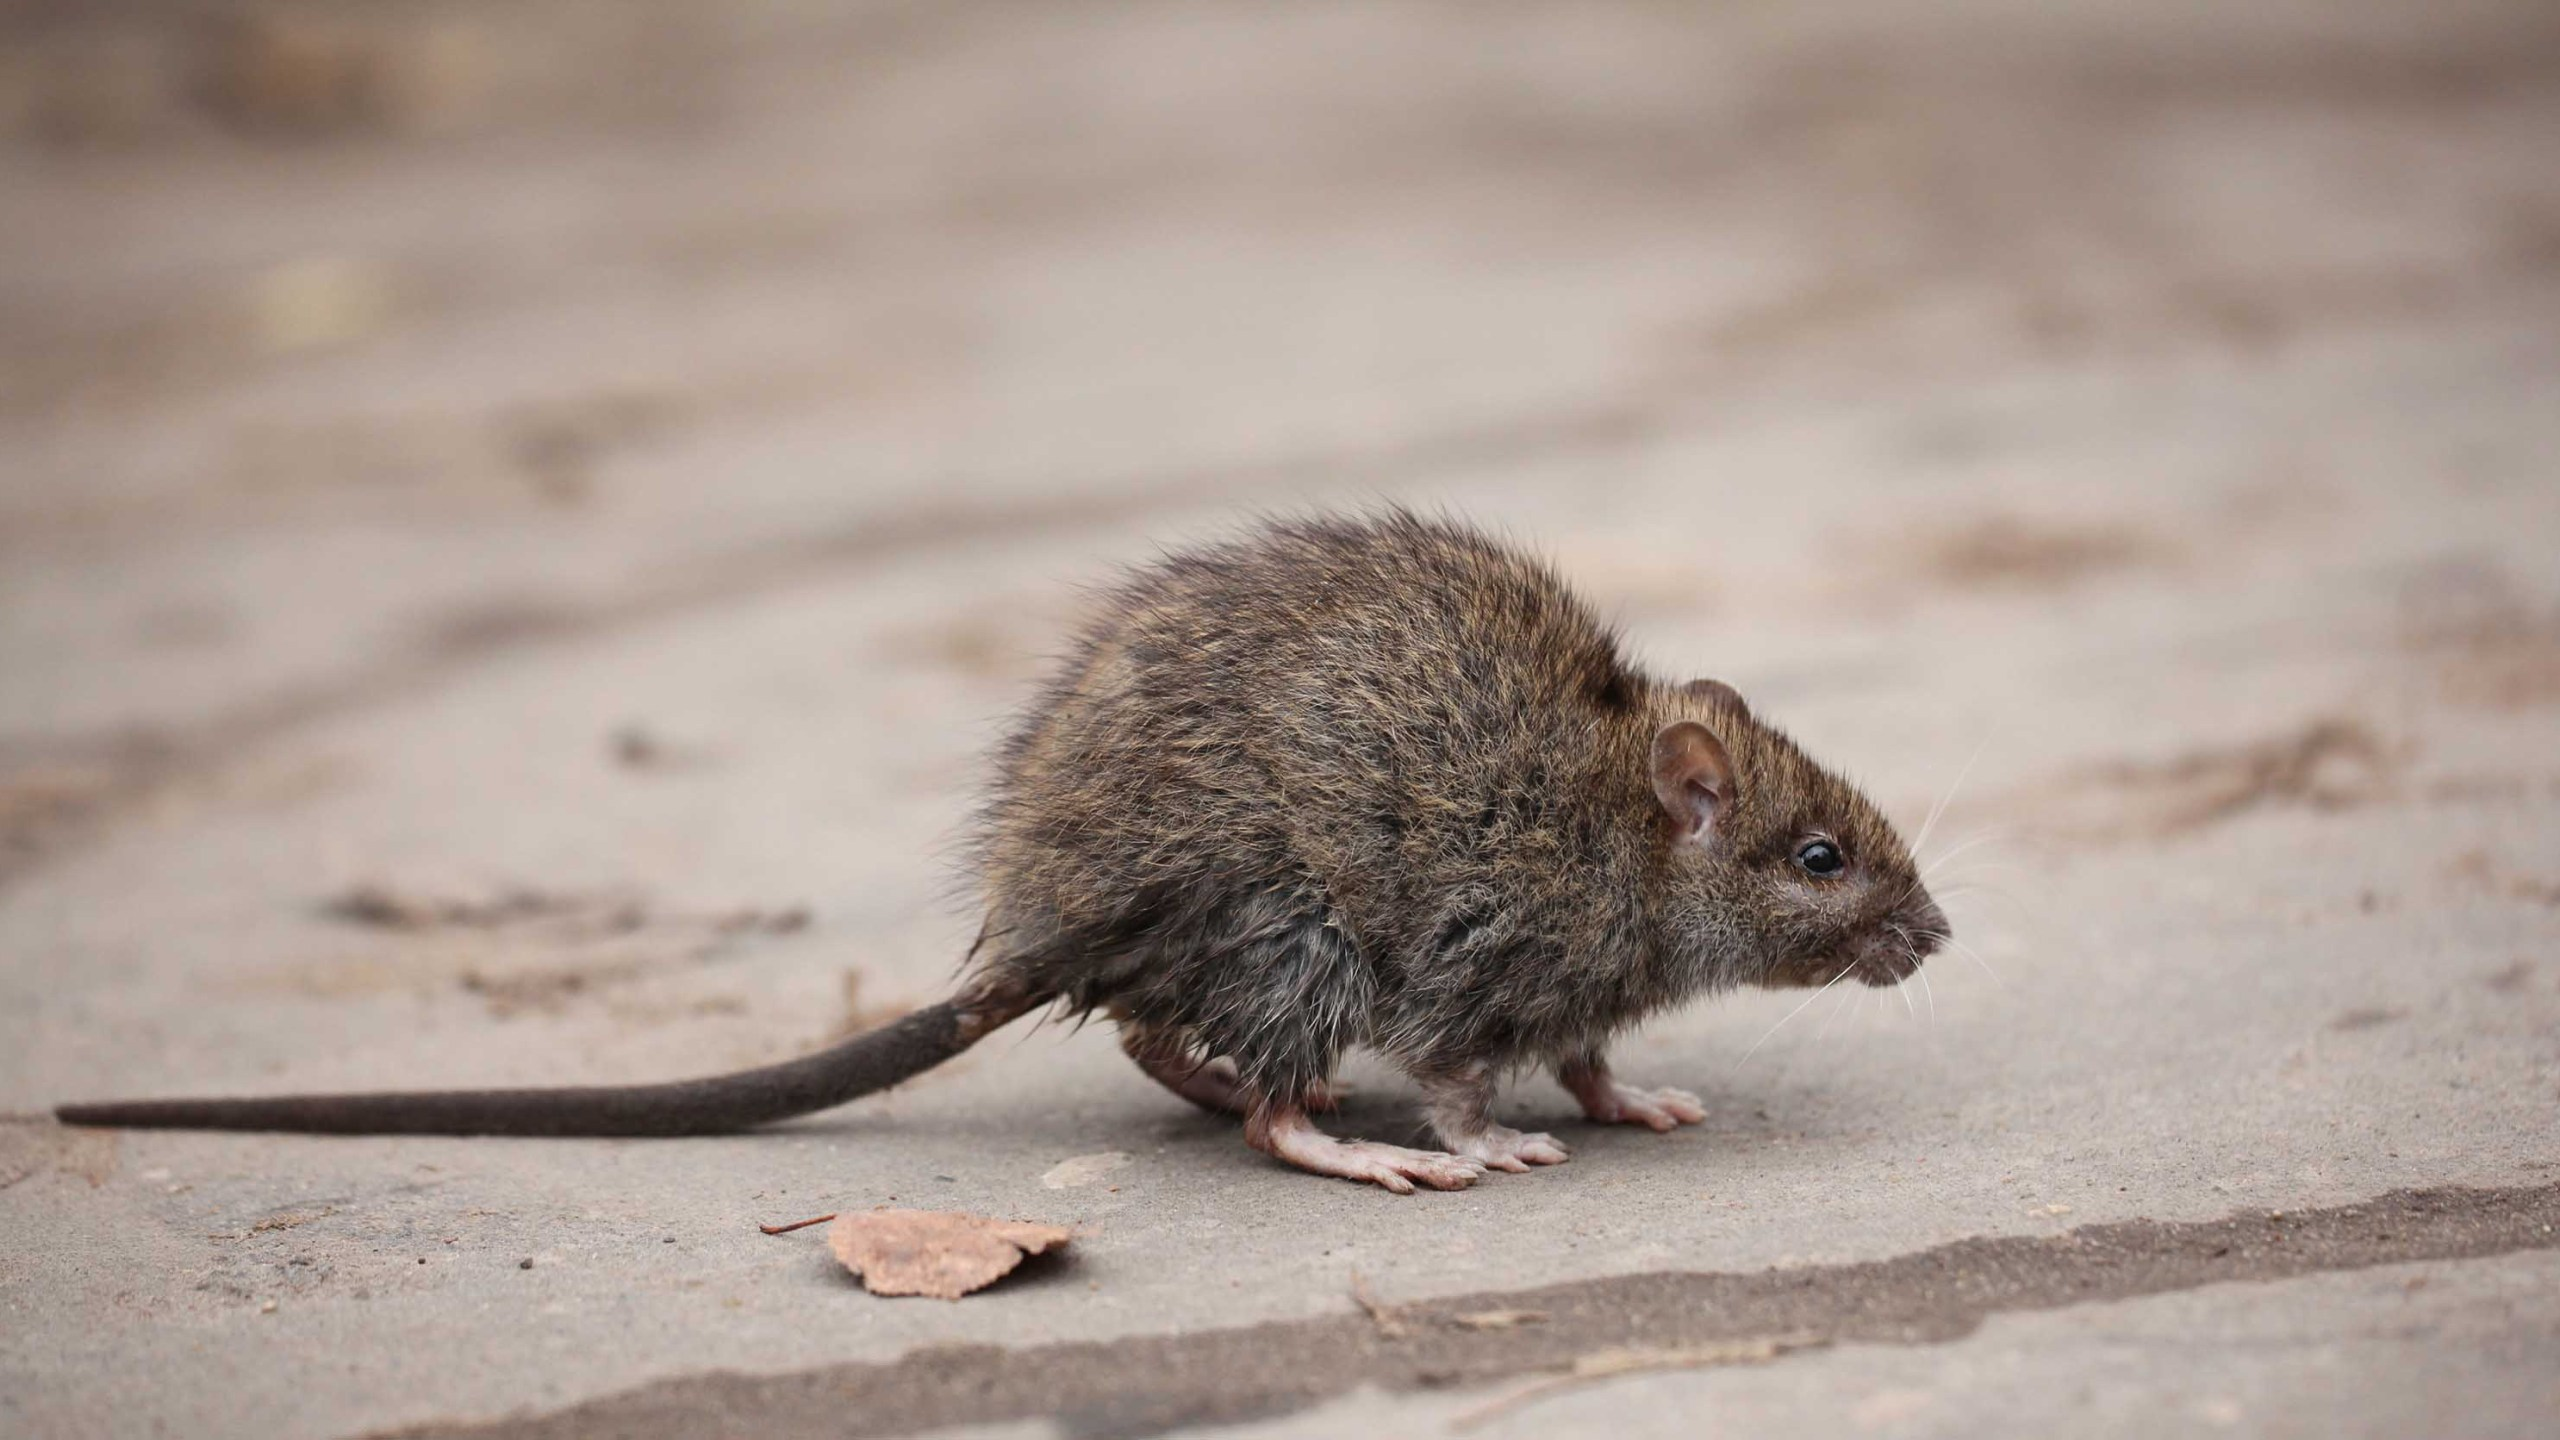 A rat is seen in a file photo. (Shutterstock via CNN)